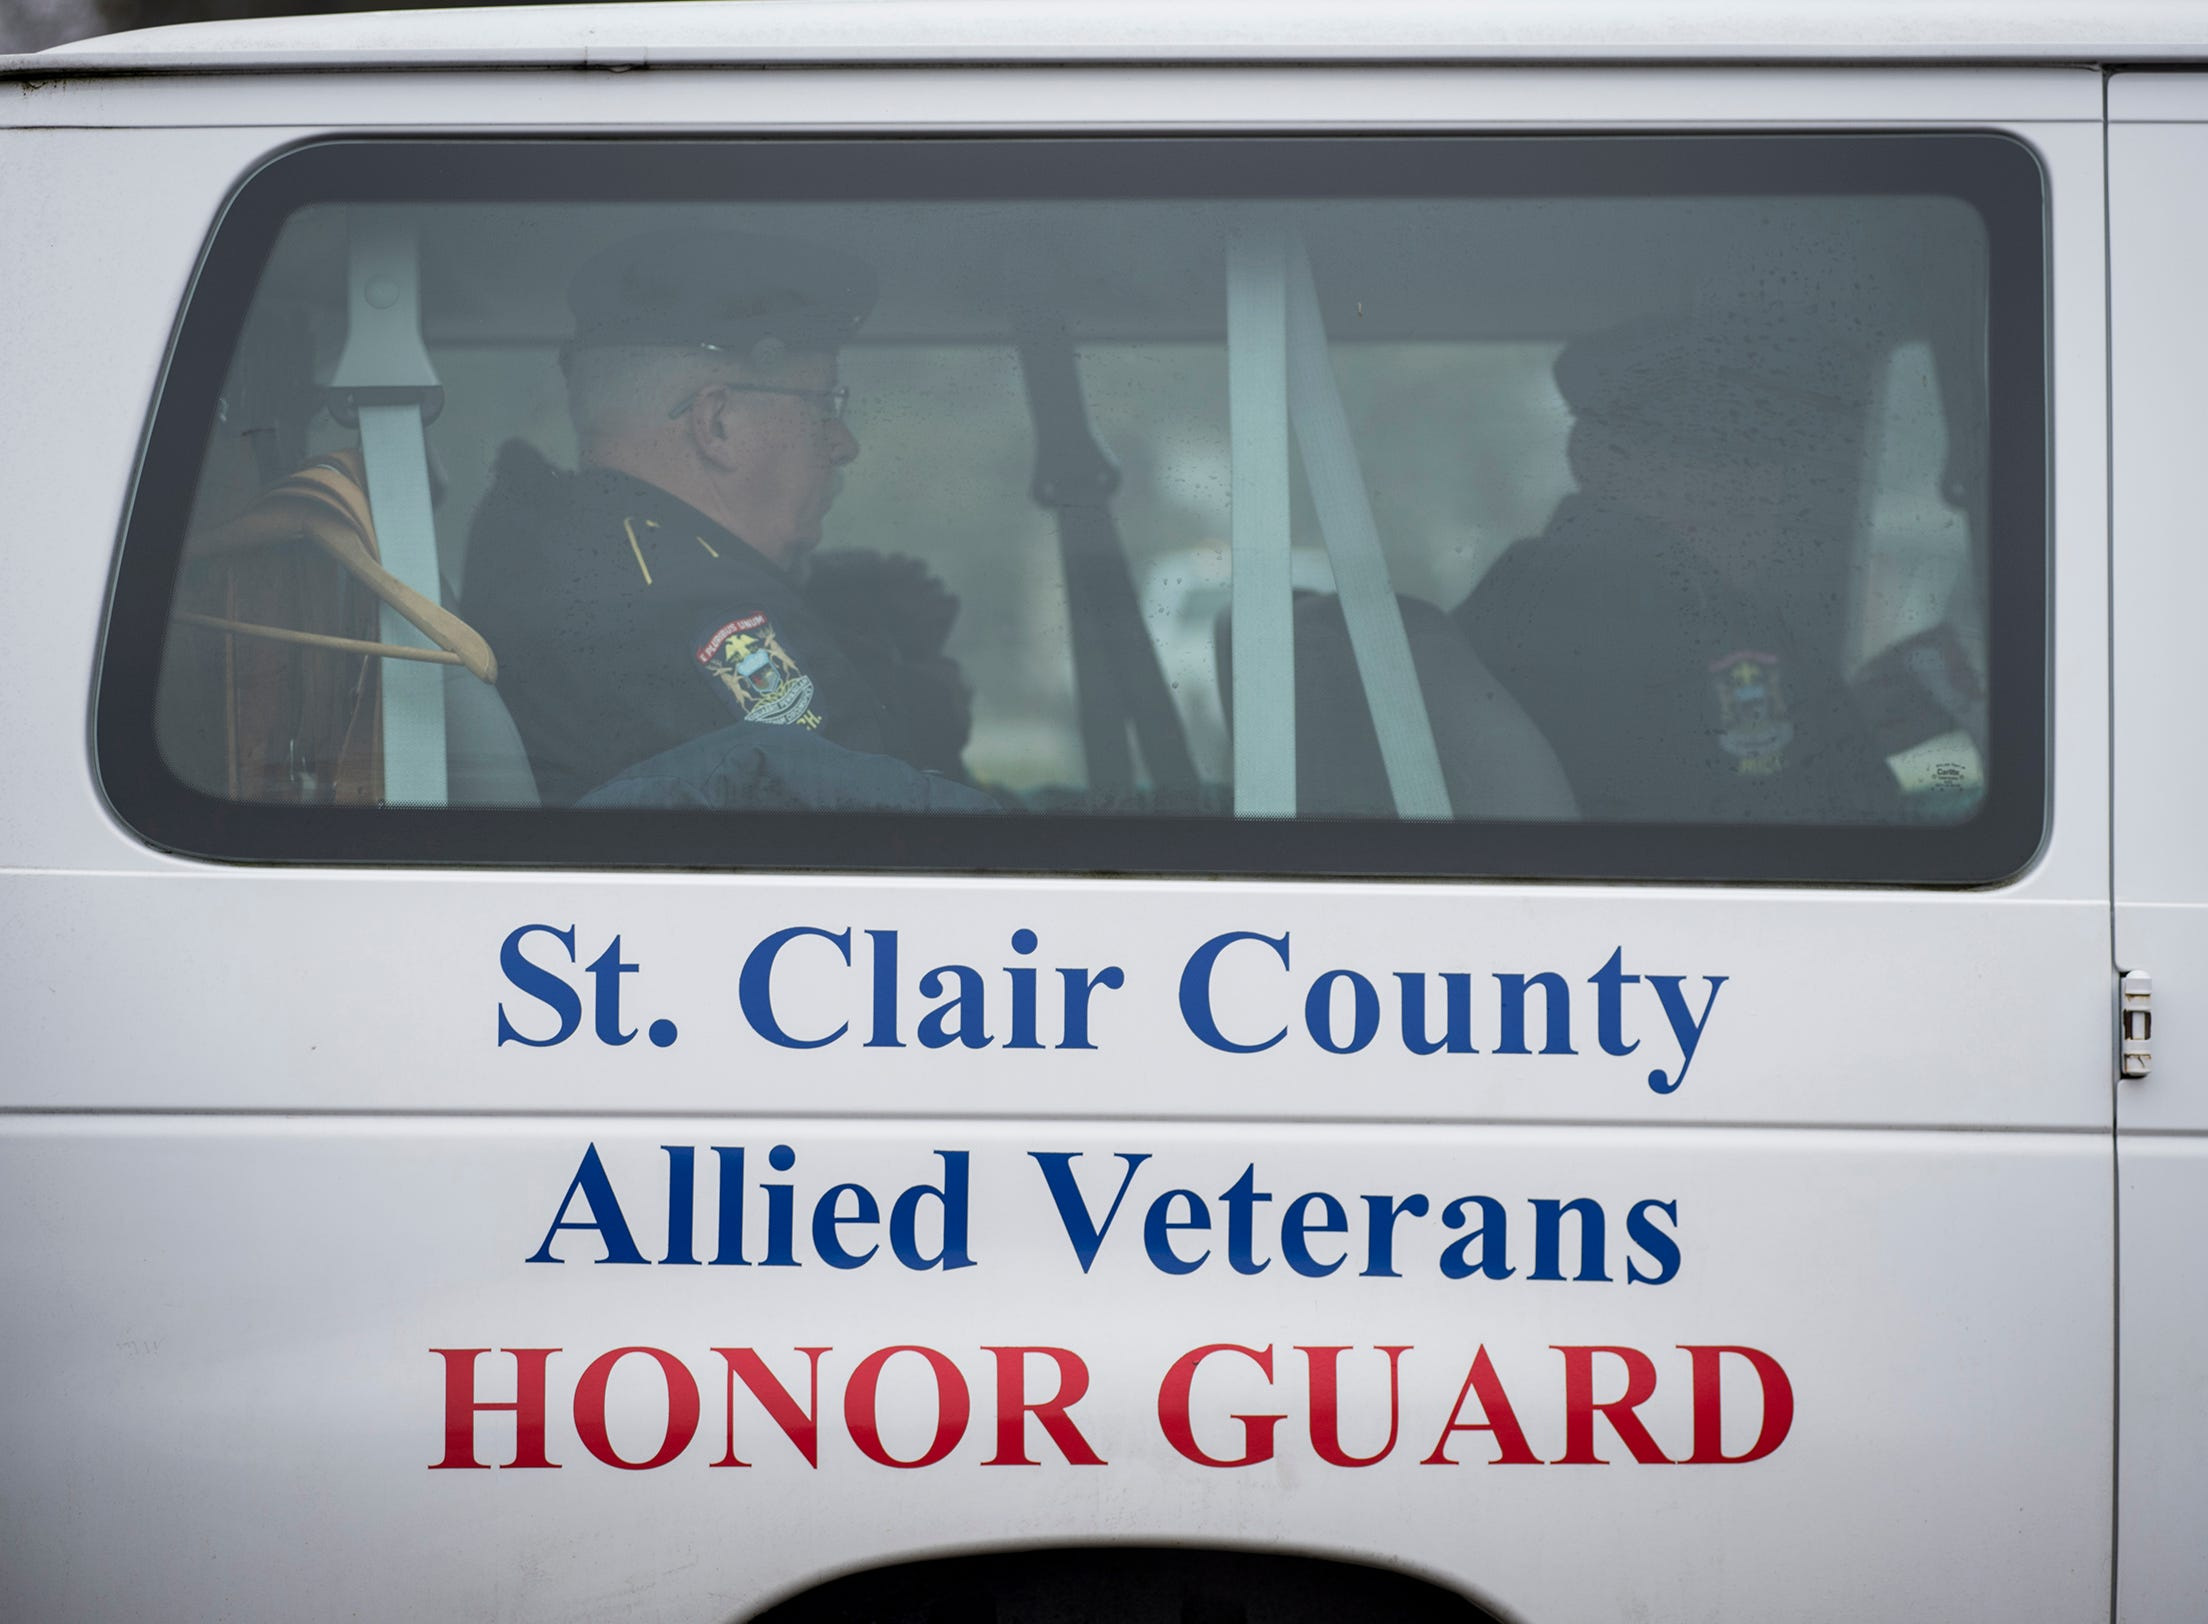 The St. Clair County Allied Veterans Council Honor Guard arrives at the Allied Veterans Cemetery Friday, Dec. 14, 2018 for the funeral of Joseph A. Humpries.